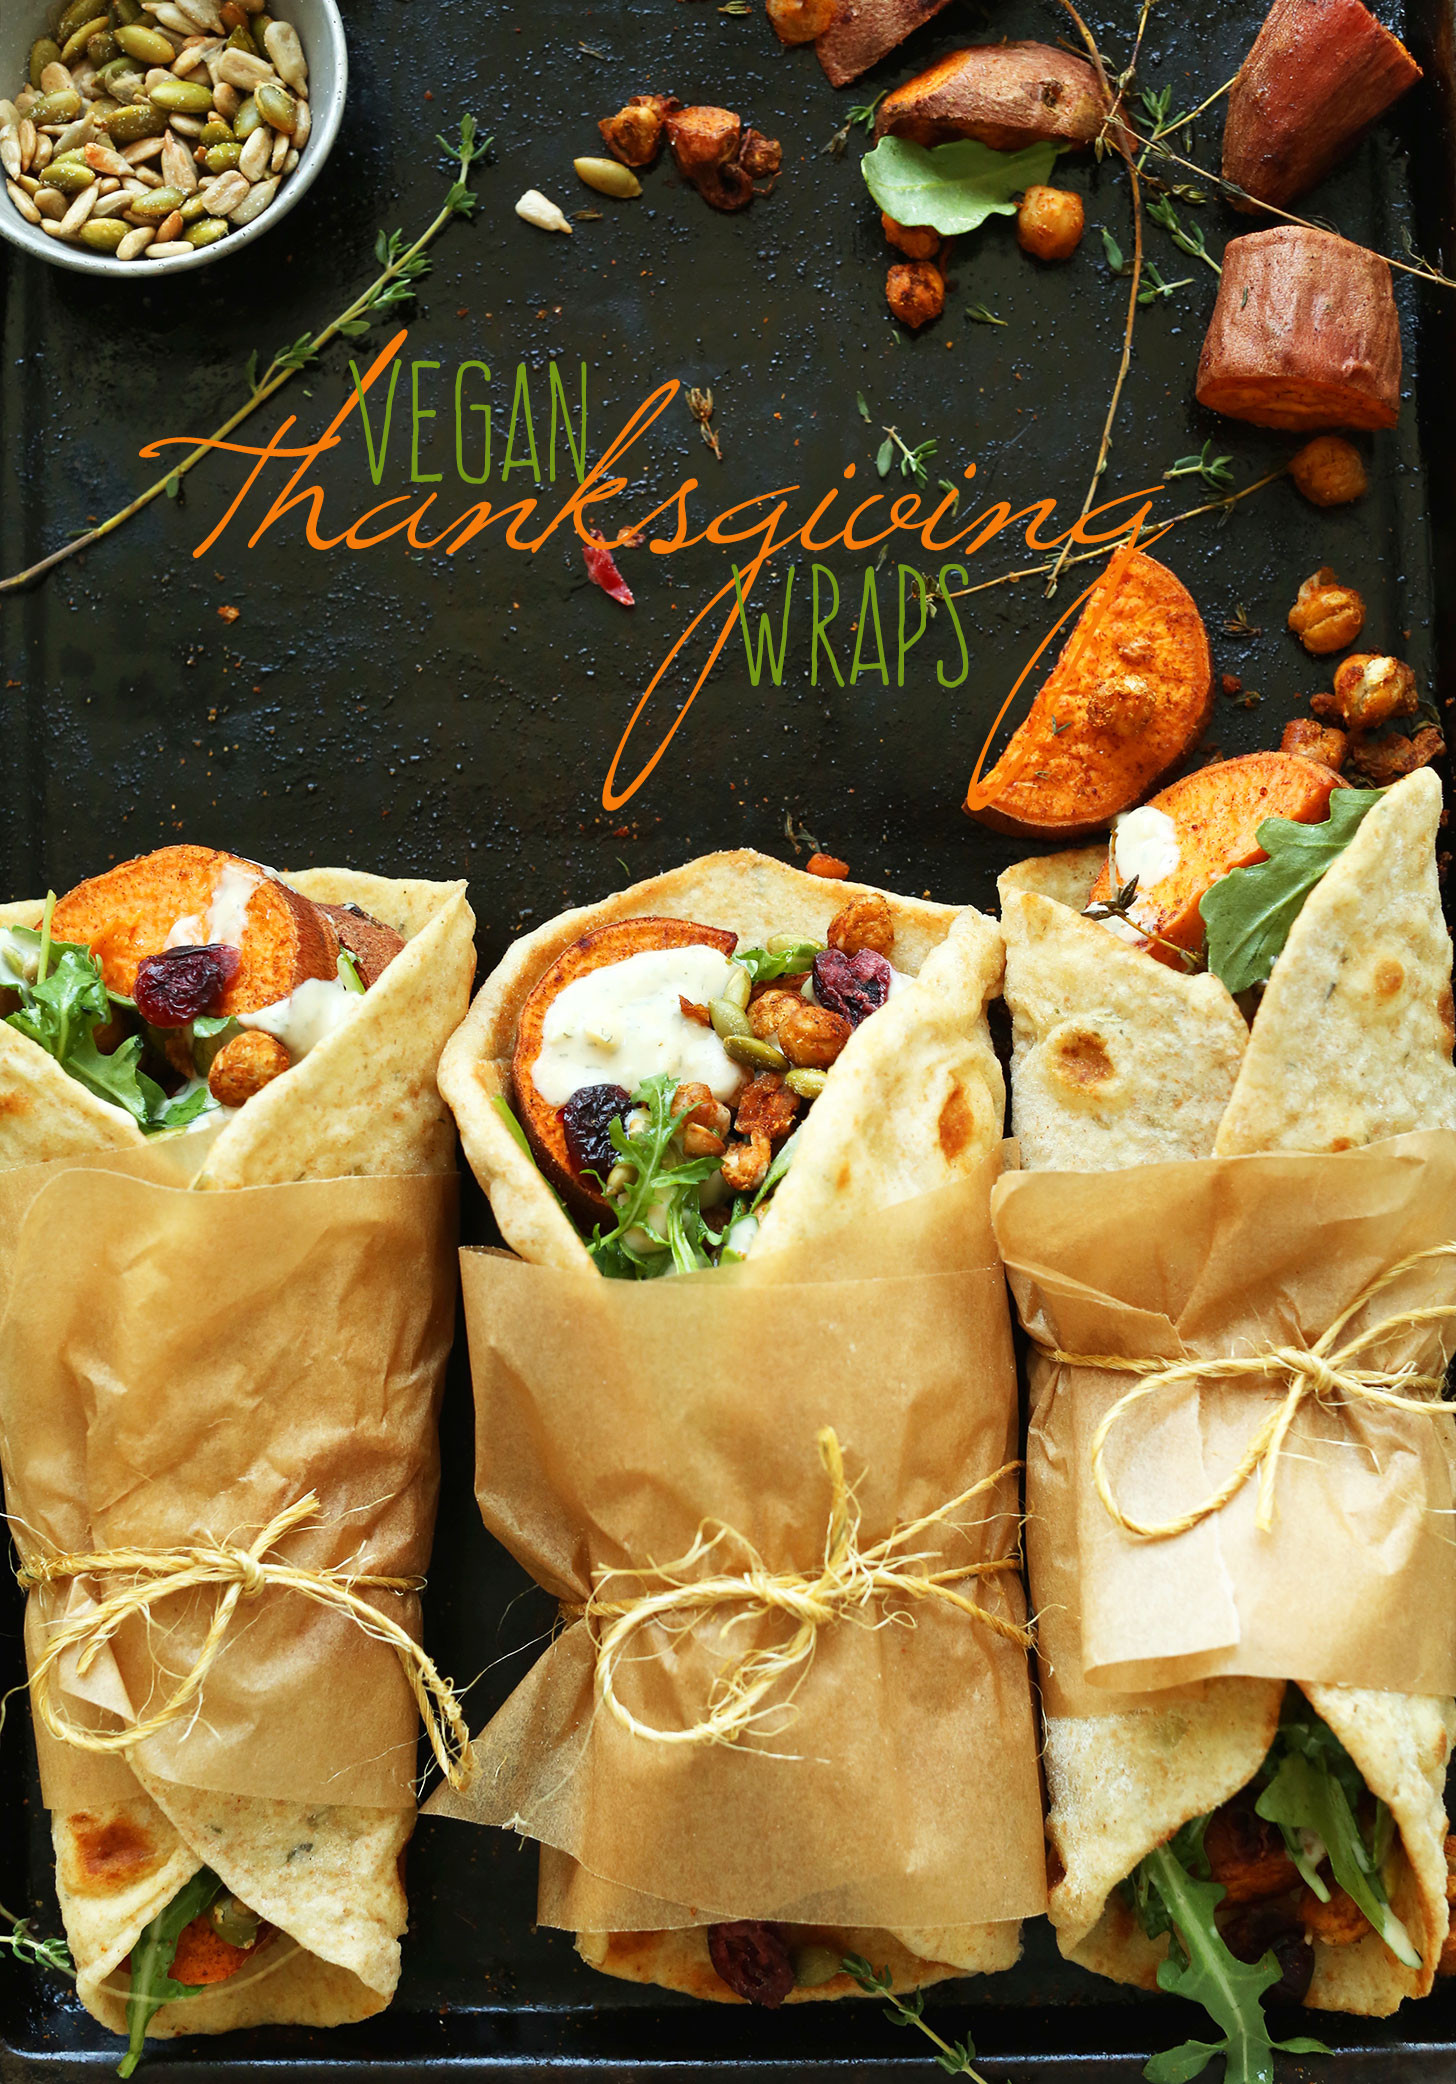 Vegan Sweet Potato Recipes Thanksgiving  Vegan Thanksgiving Wraps